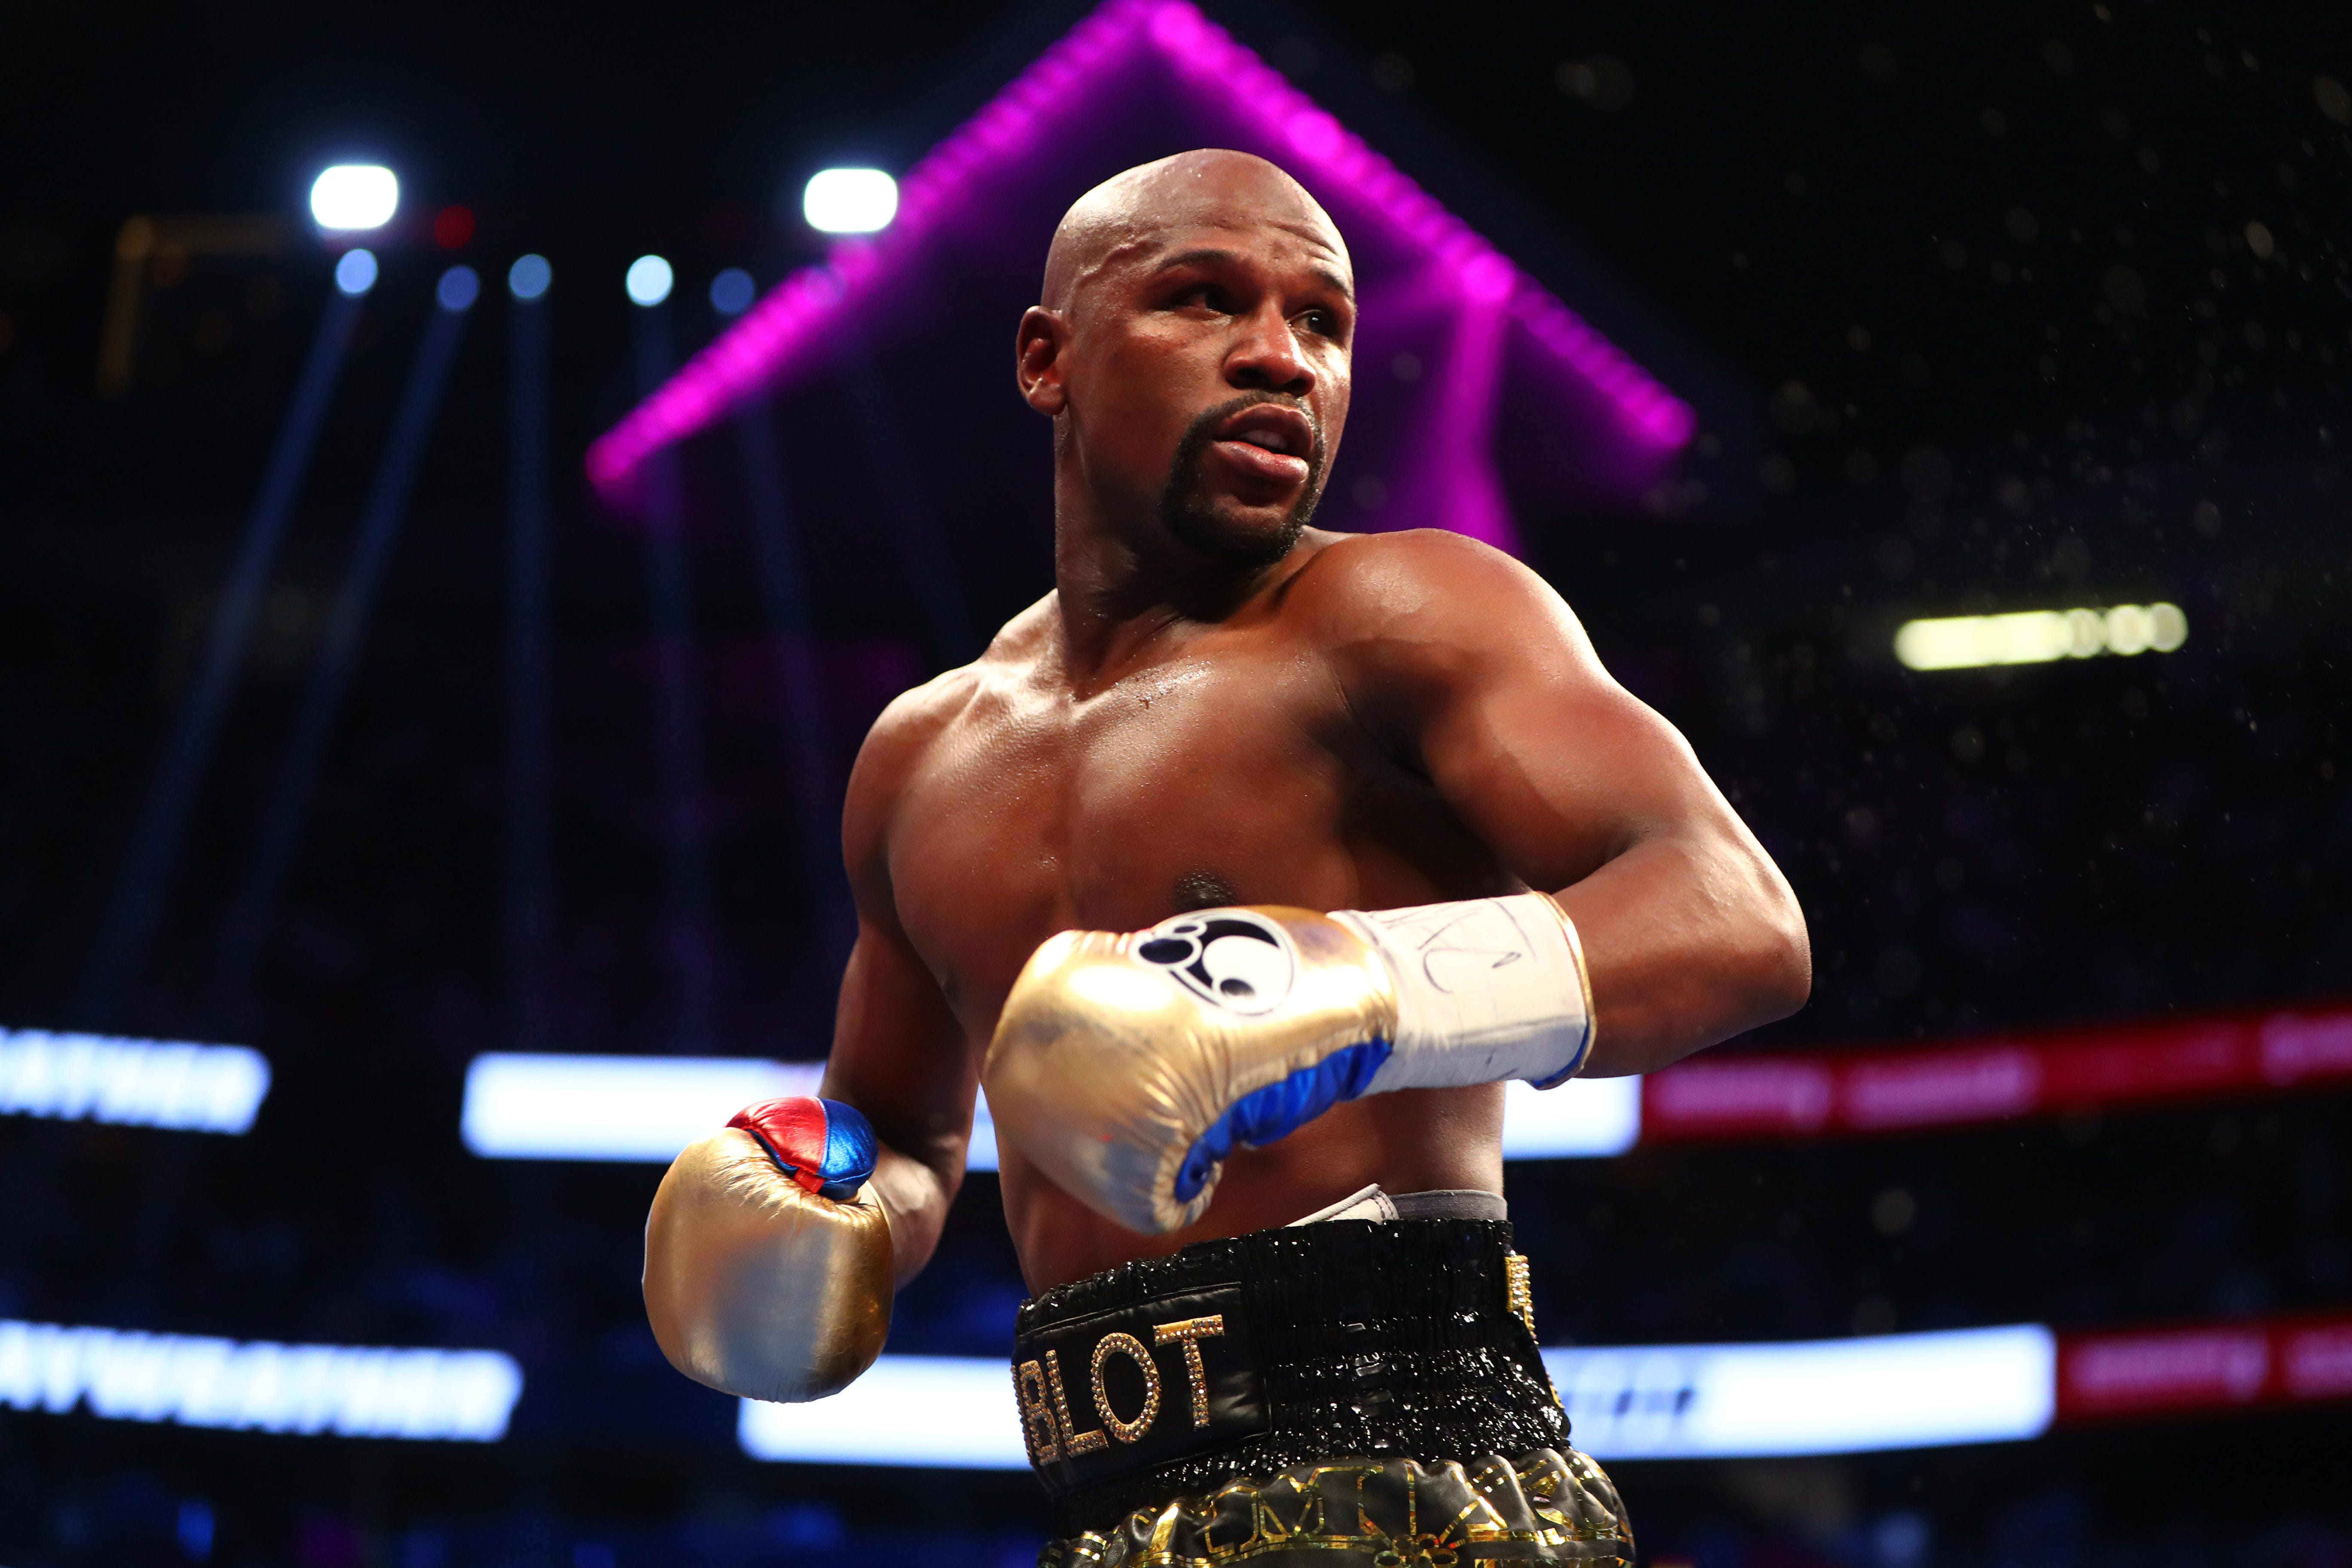 Boxing legend Floyd Mayweather, social media star Logan Paul announce exhibition bout